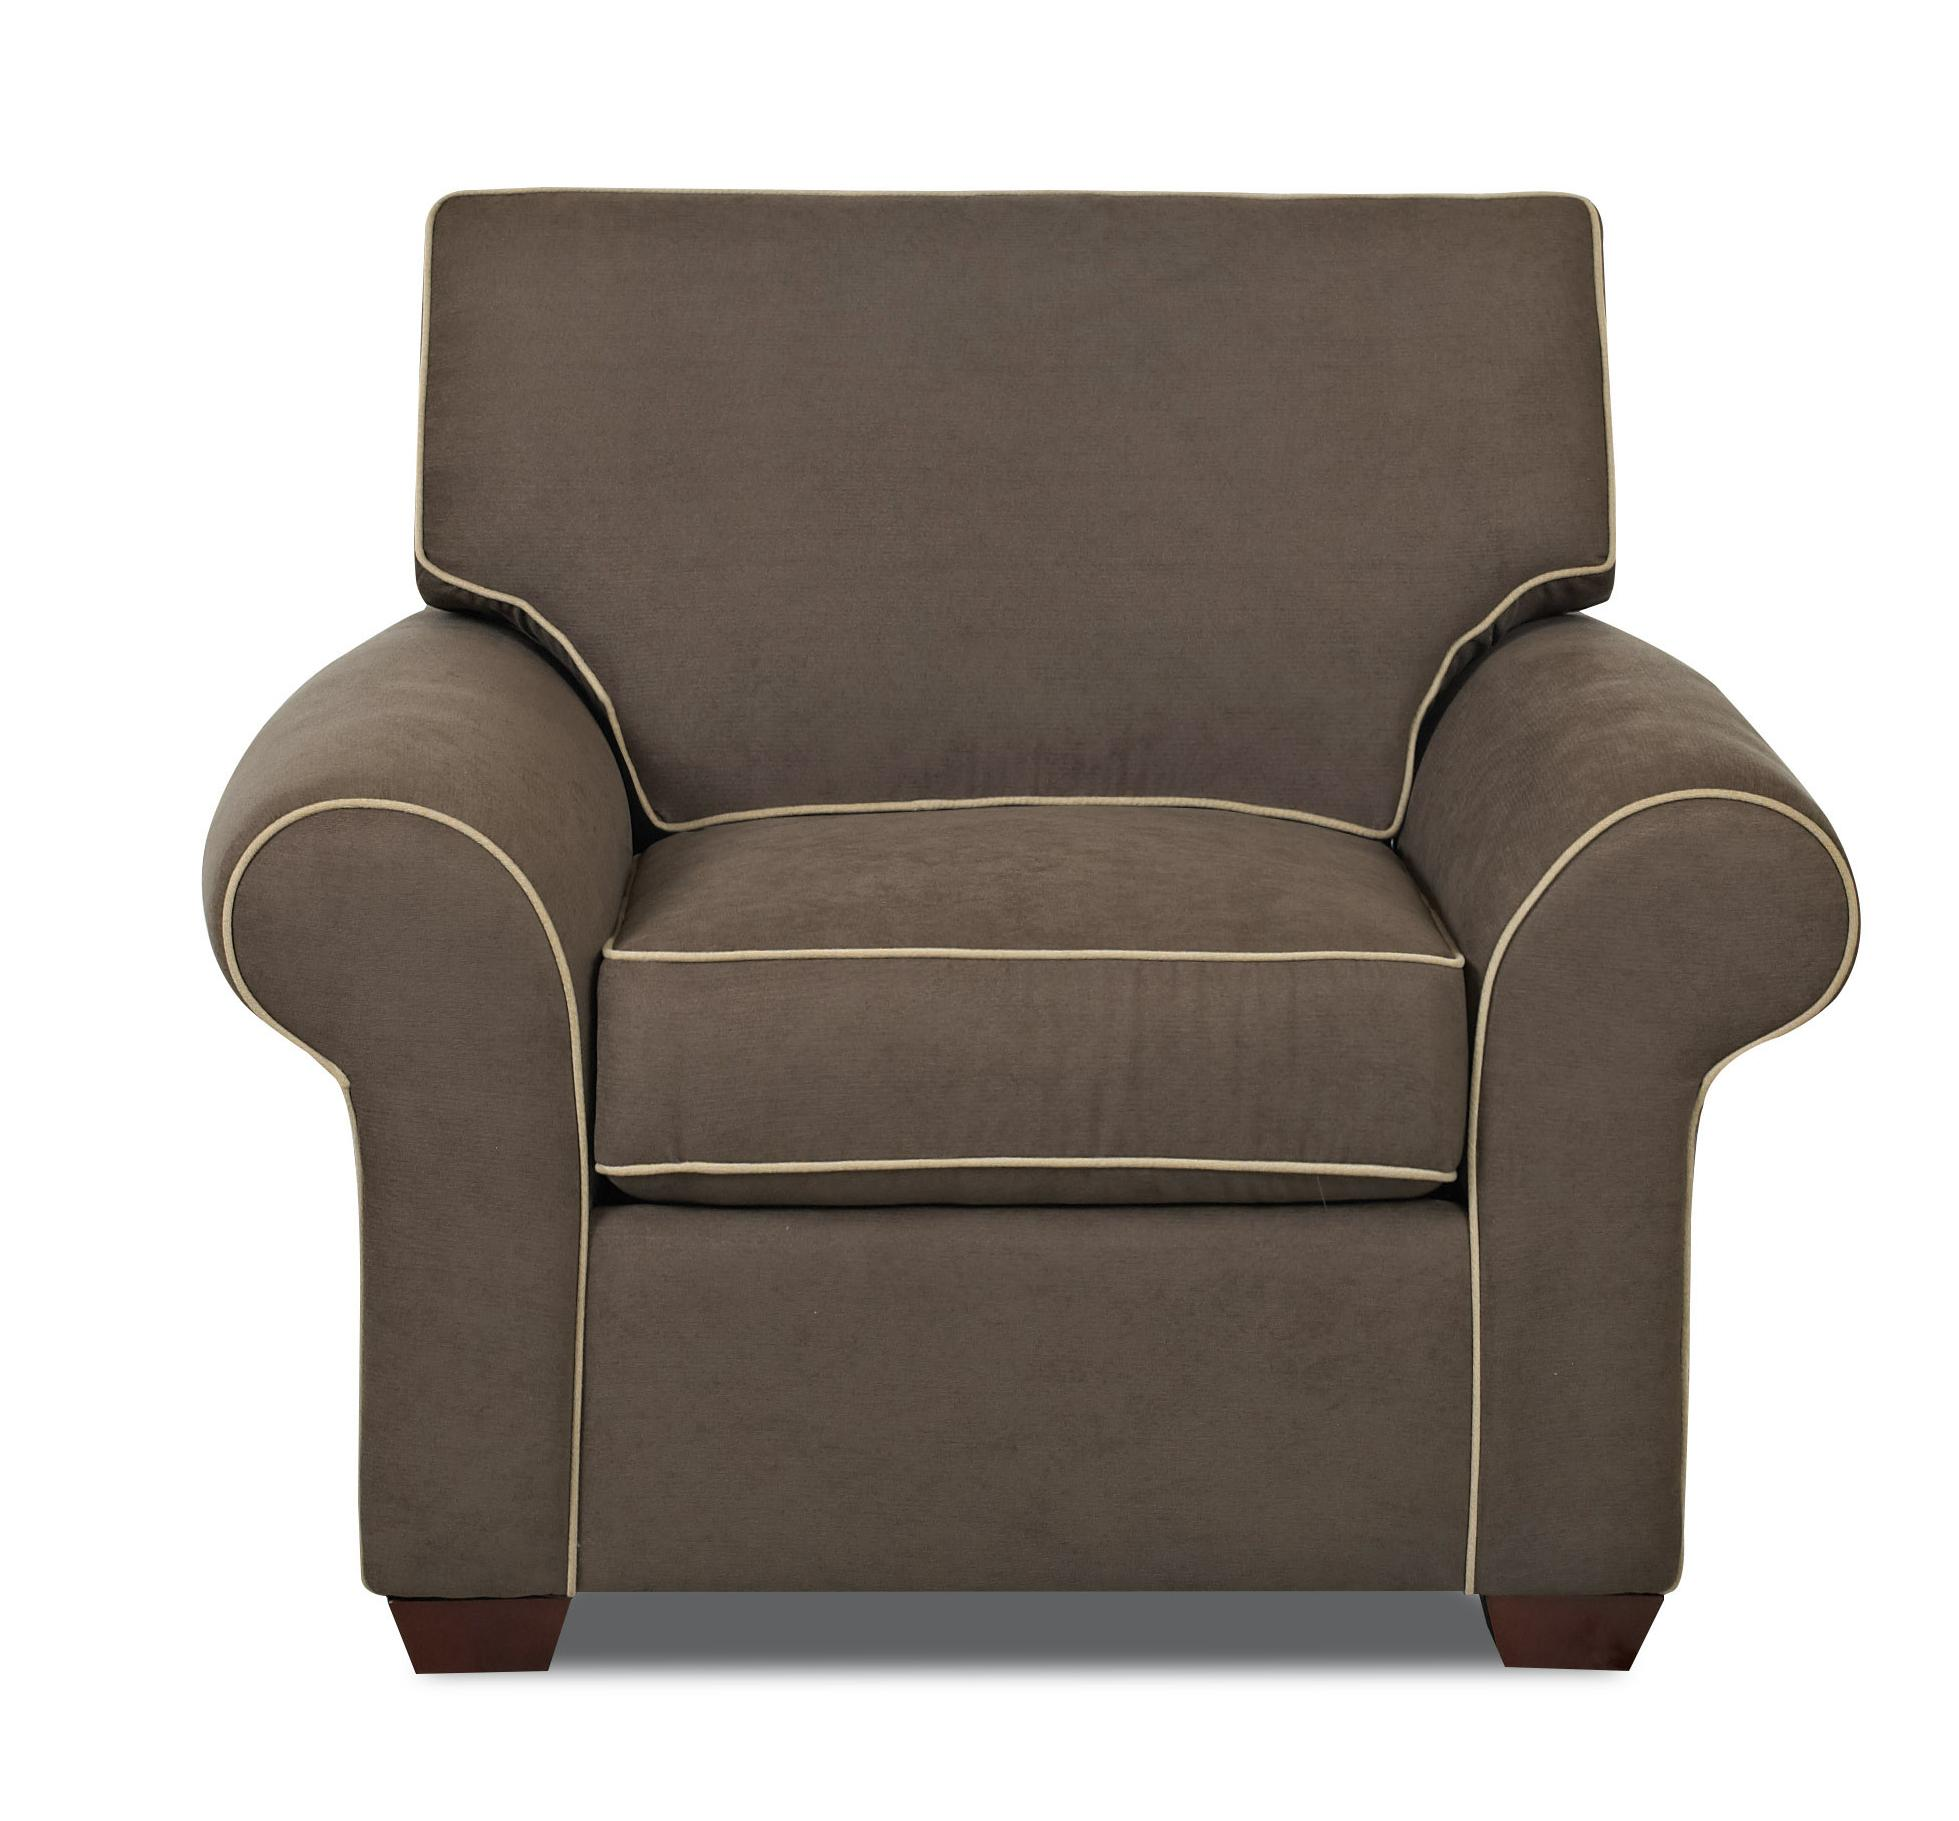 Upholstered Chair with Rolled Arms and Wood Feet